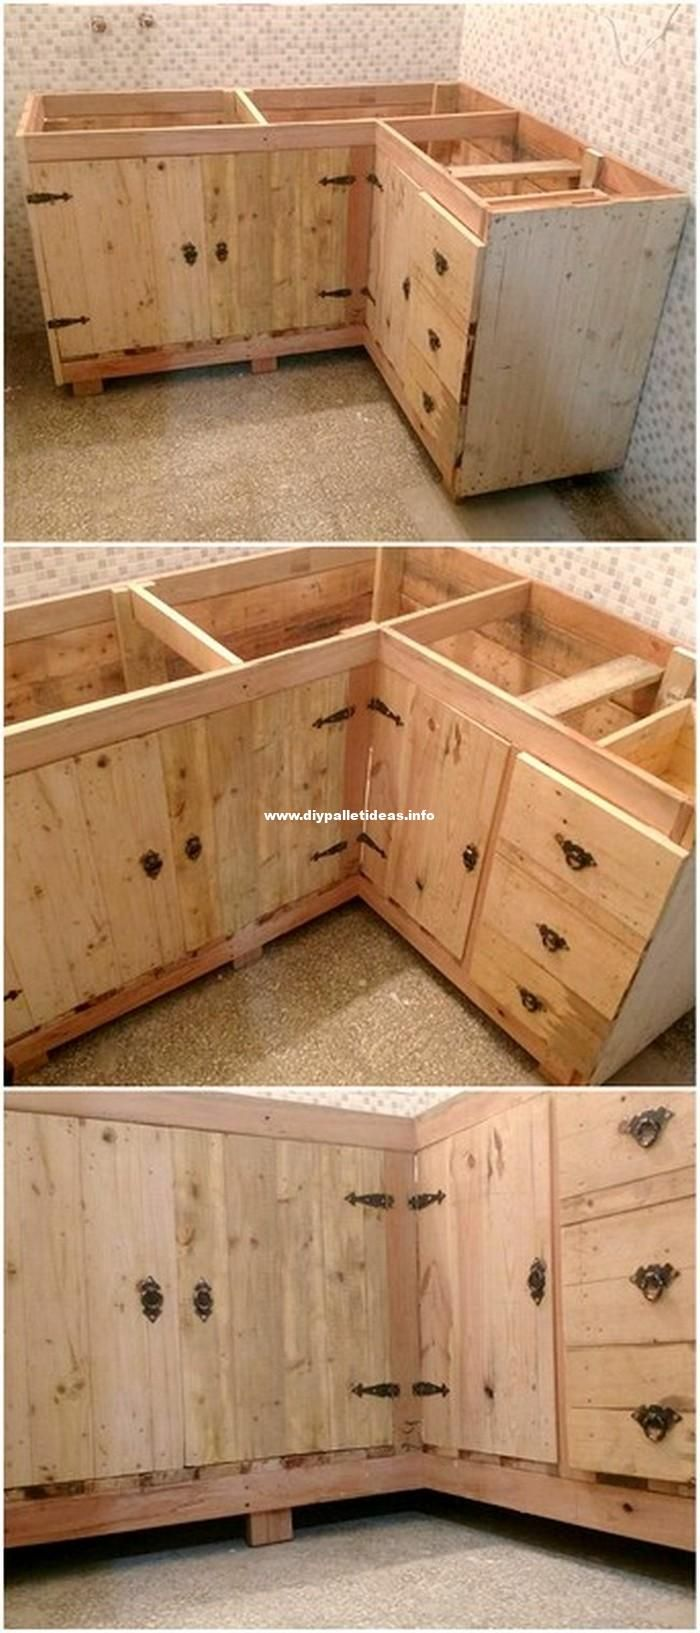 Kitchen Cabinets Made Of Pallets Wood Pallet Diy Pallet Kitchen Cabinets Wood Pallets